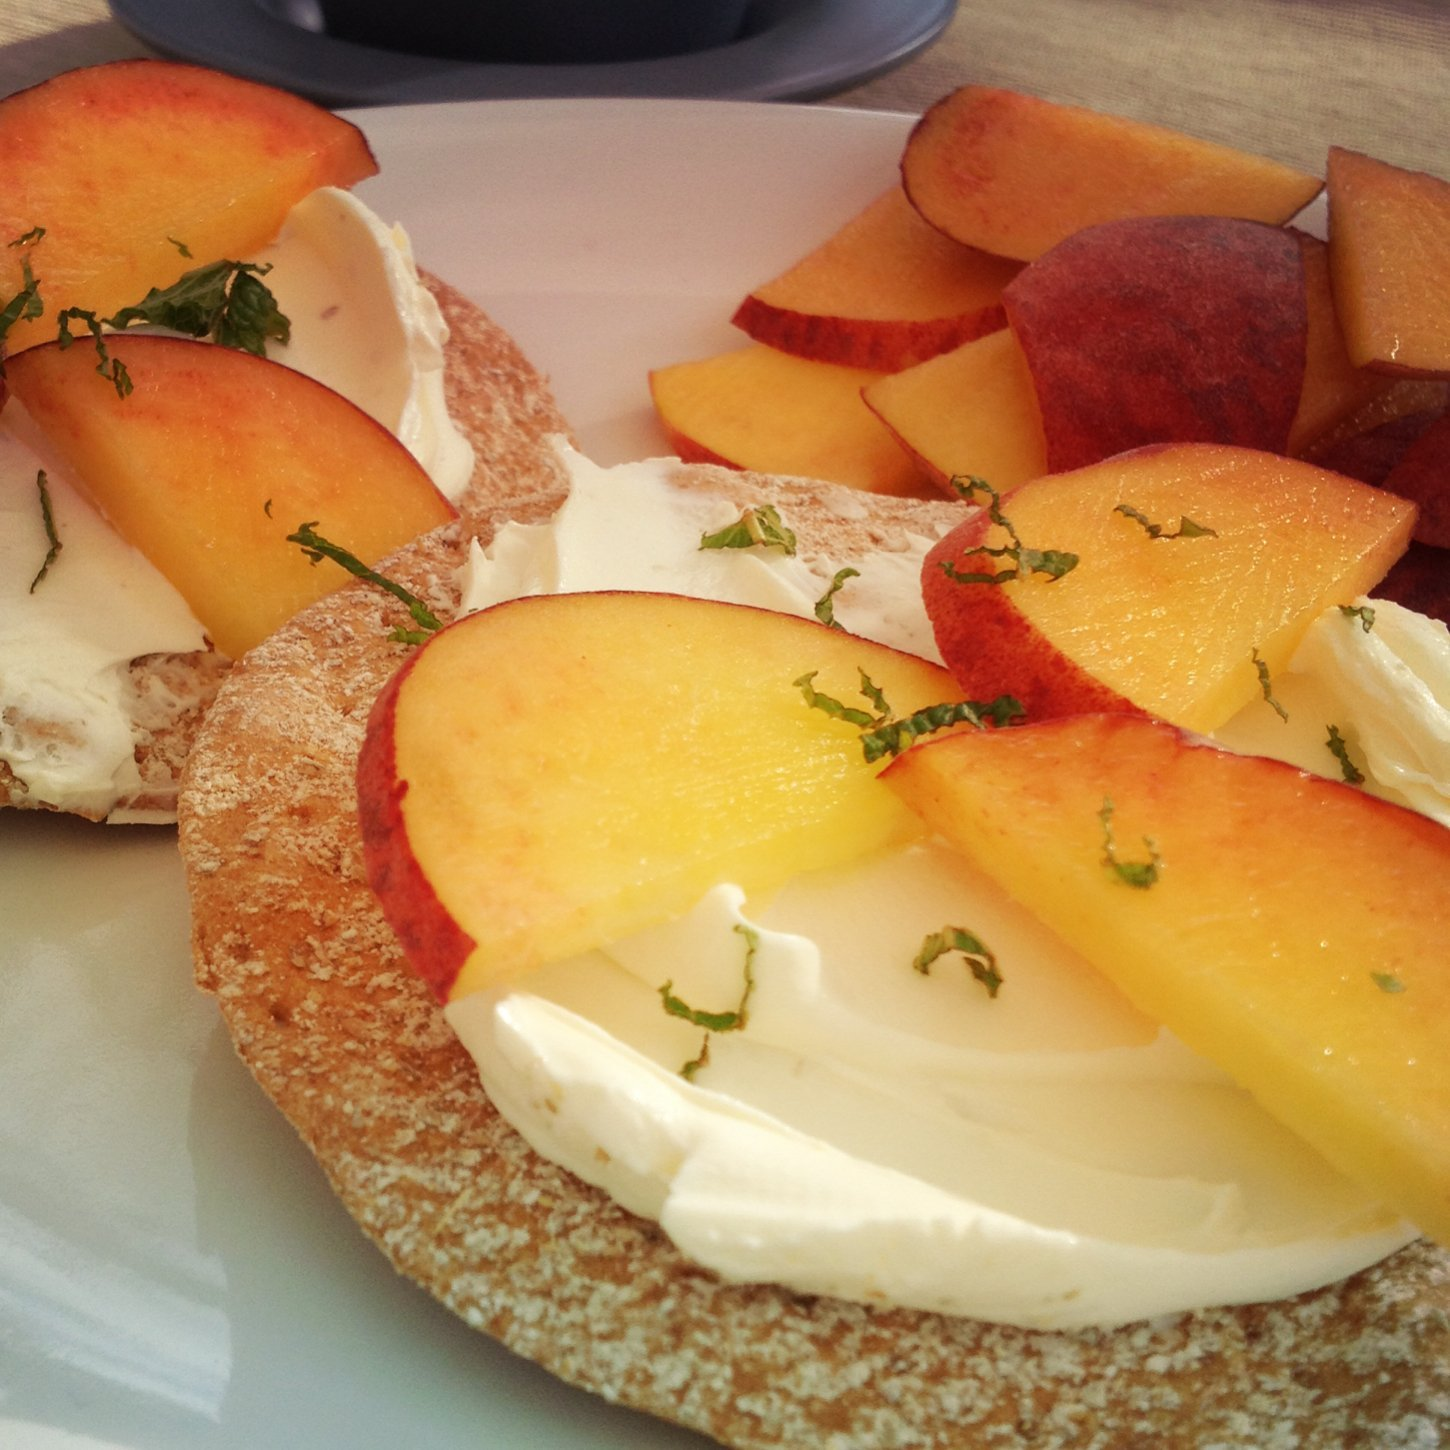 Crispbread with peaches & cream cheese